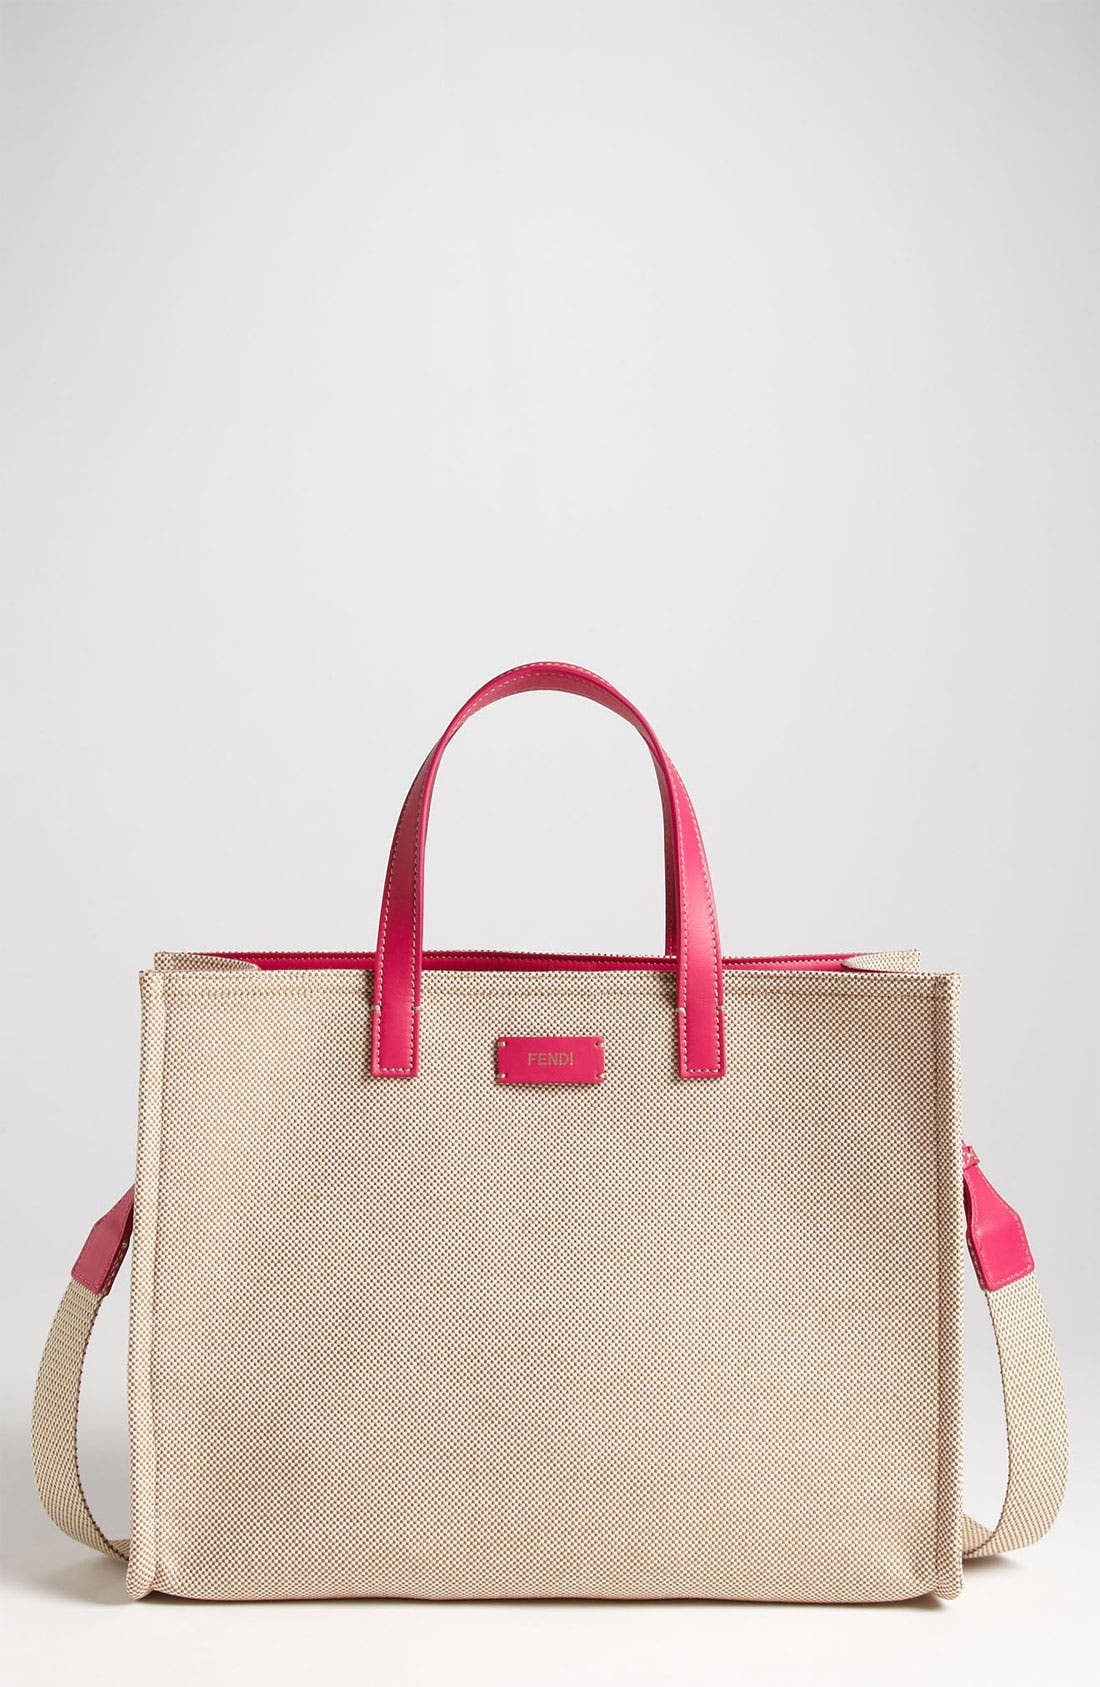 Alternate Image 1 Selected - Fendi 'Small Karl' Canvas Tote